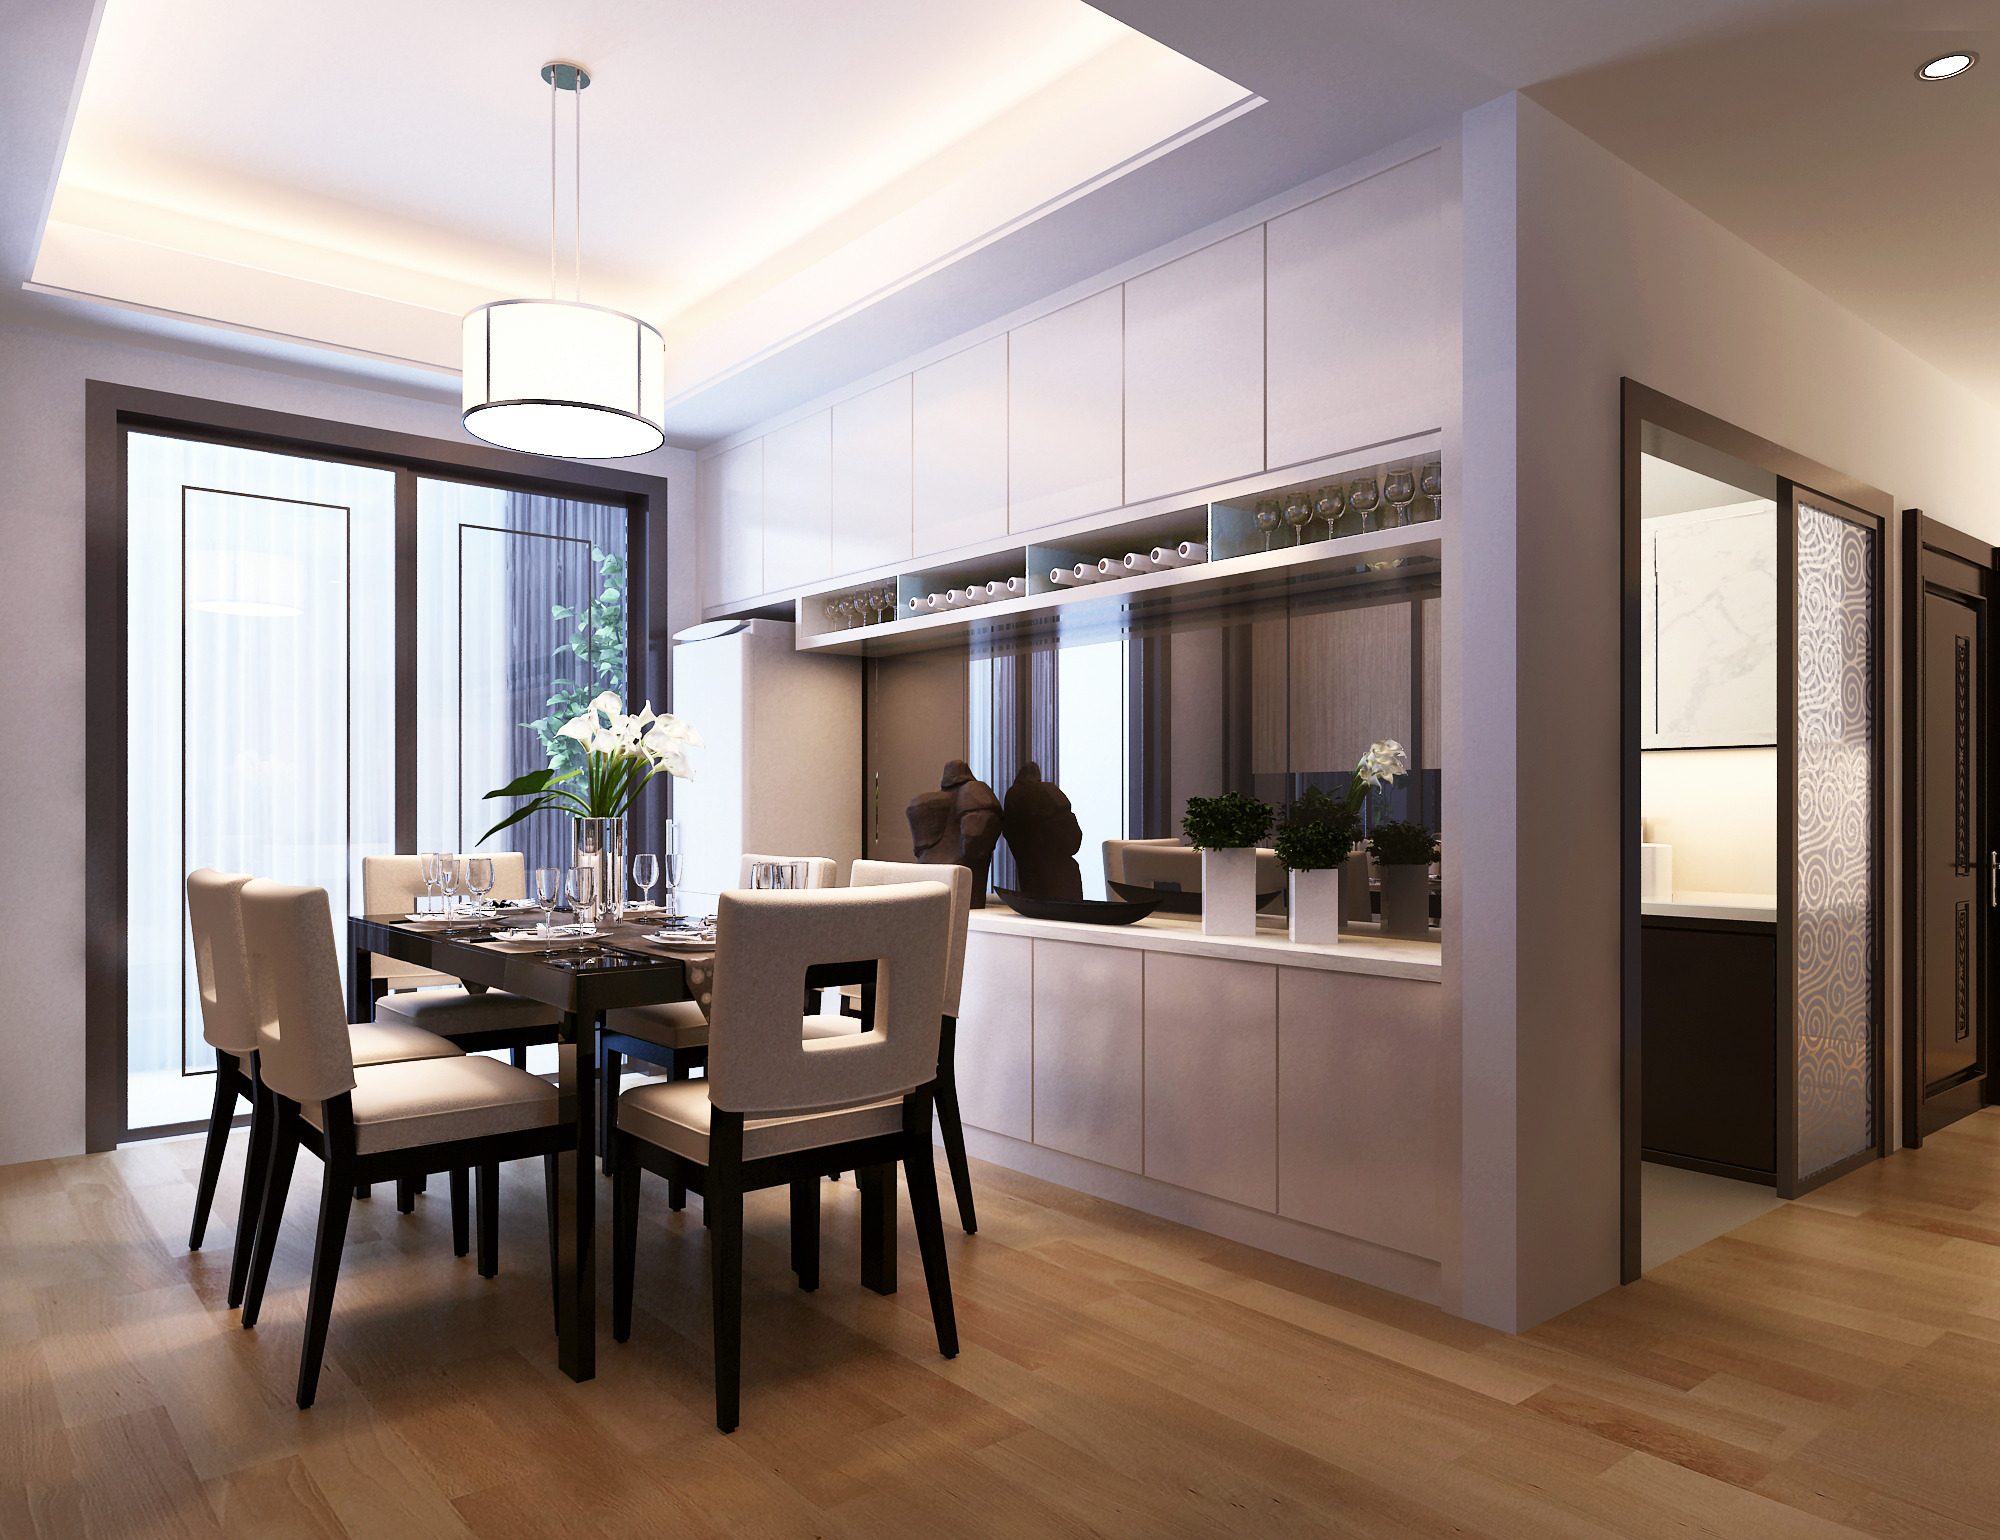 Awesome Modern Dining Room 3d Model Max 1